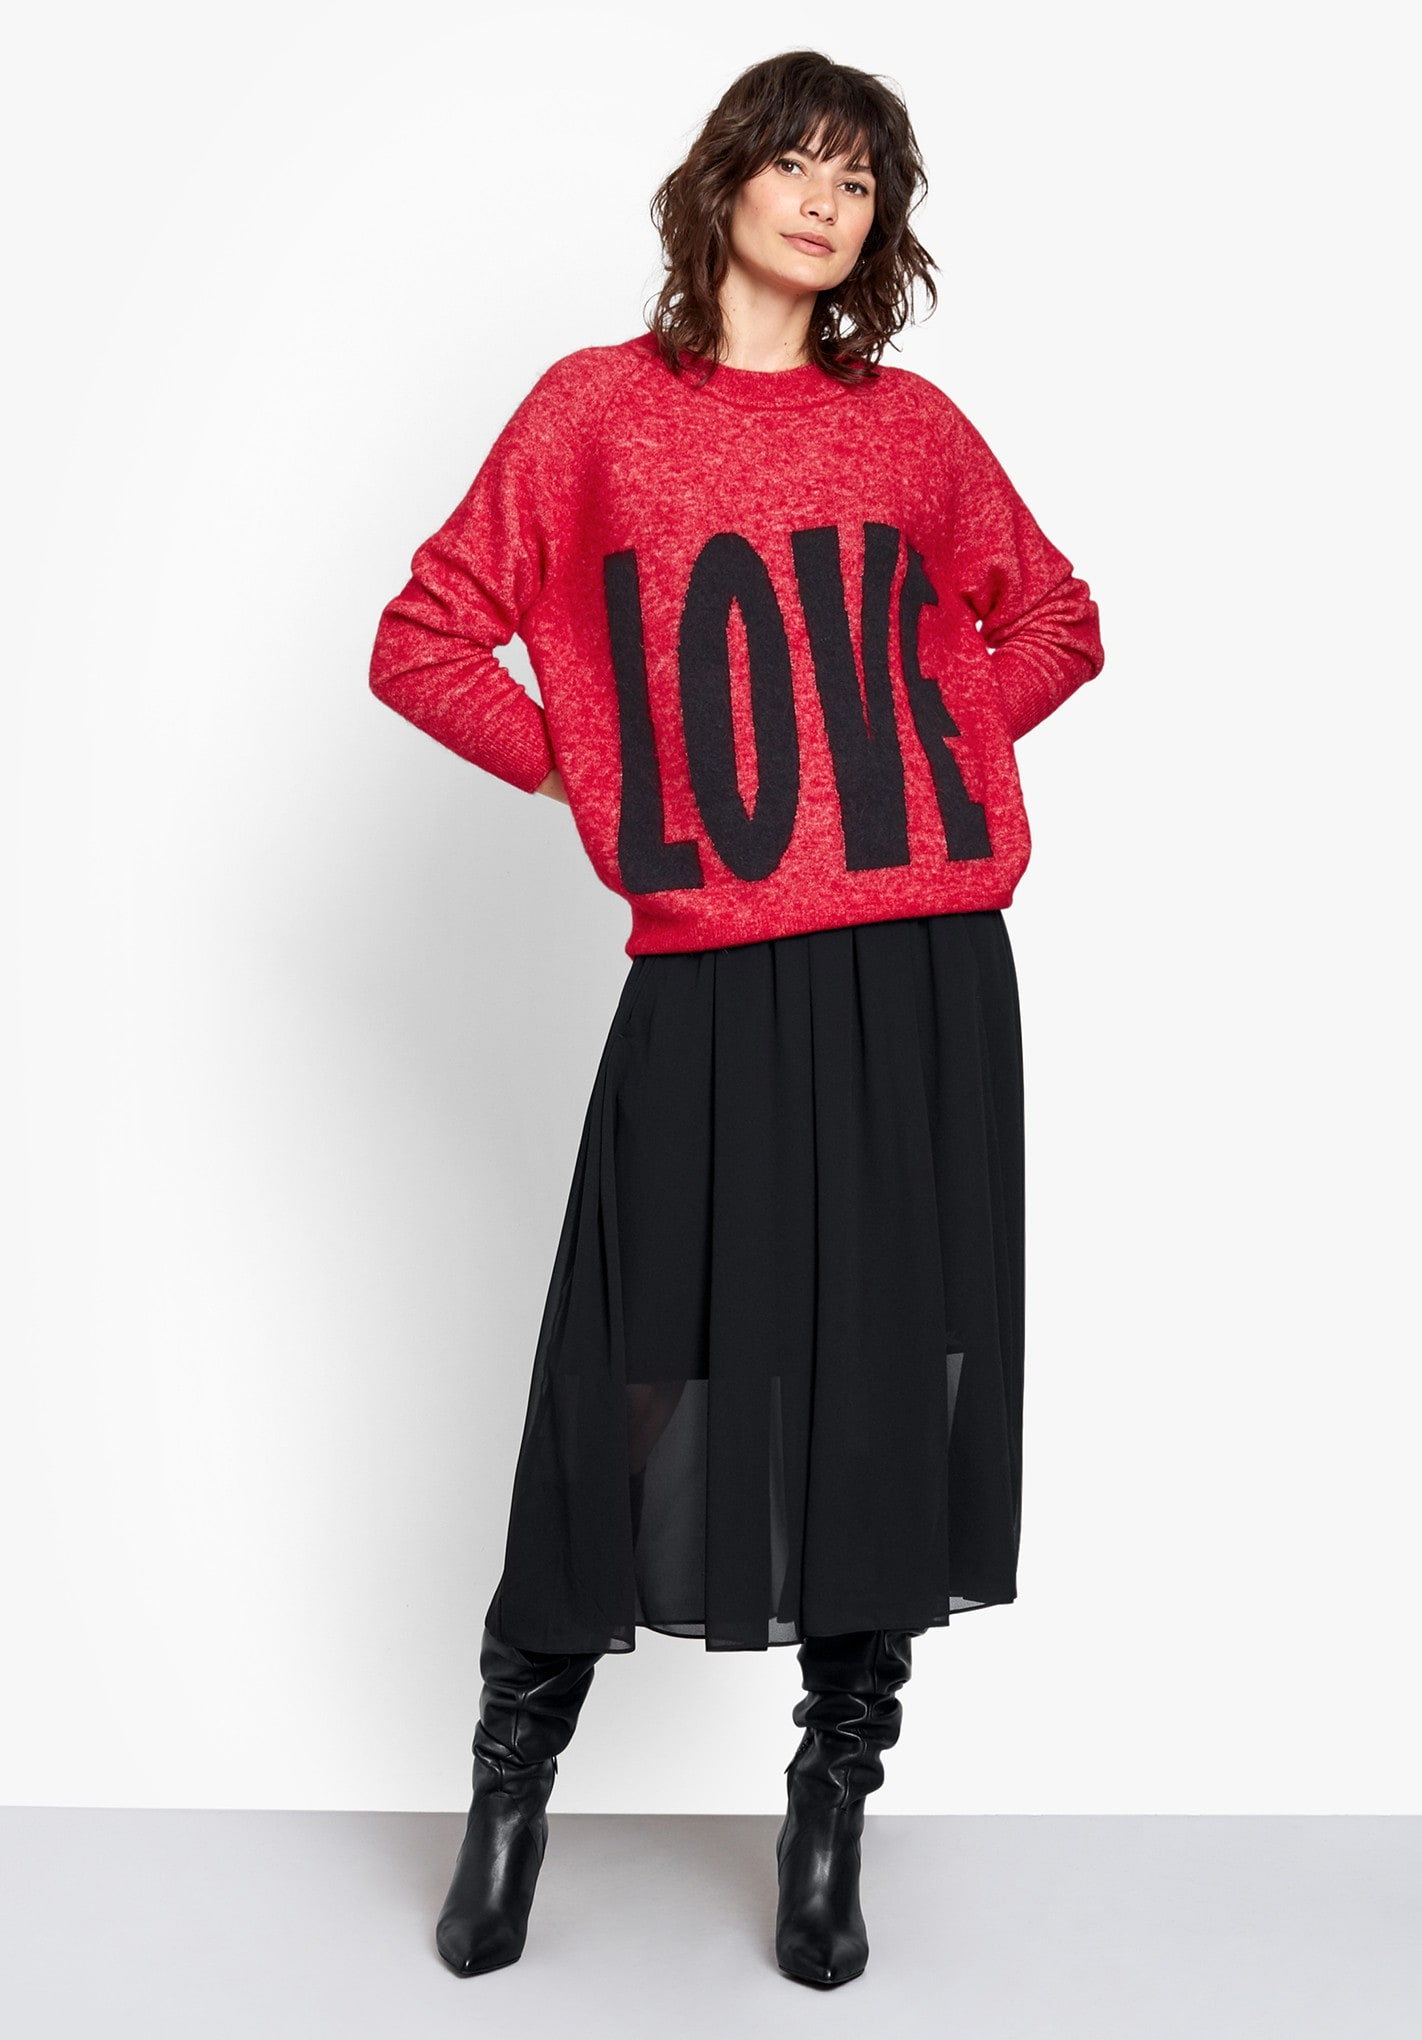 Big Love Jumper | hush